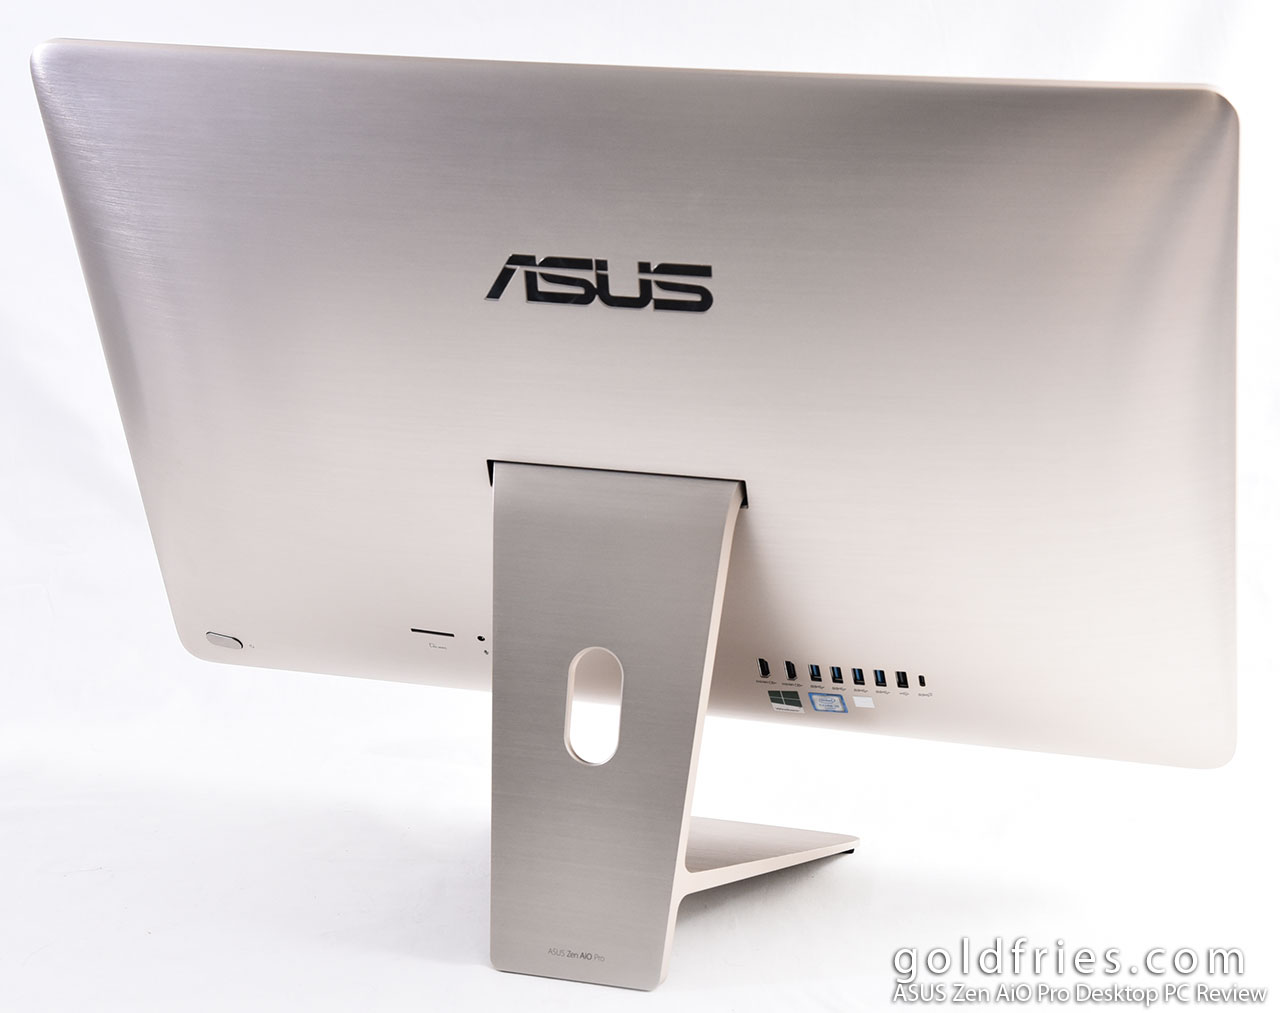 ASUS Zen AiO Desktop PC Review